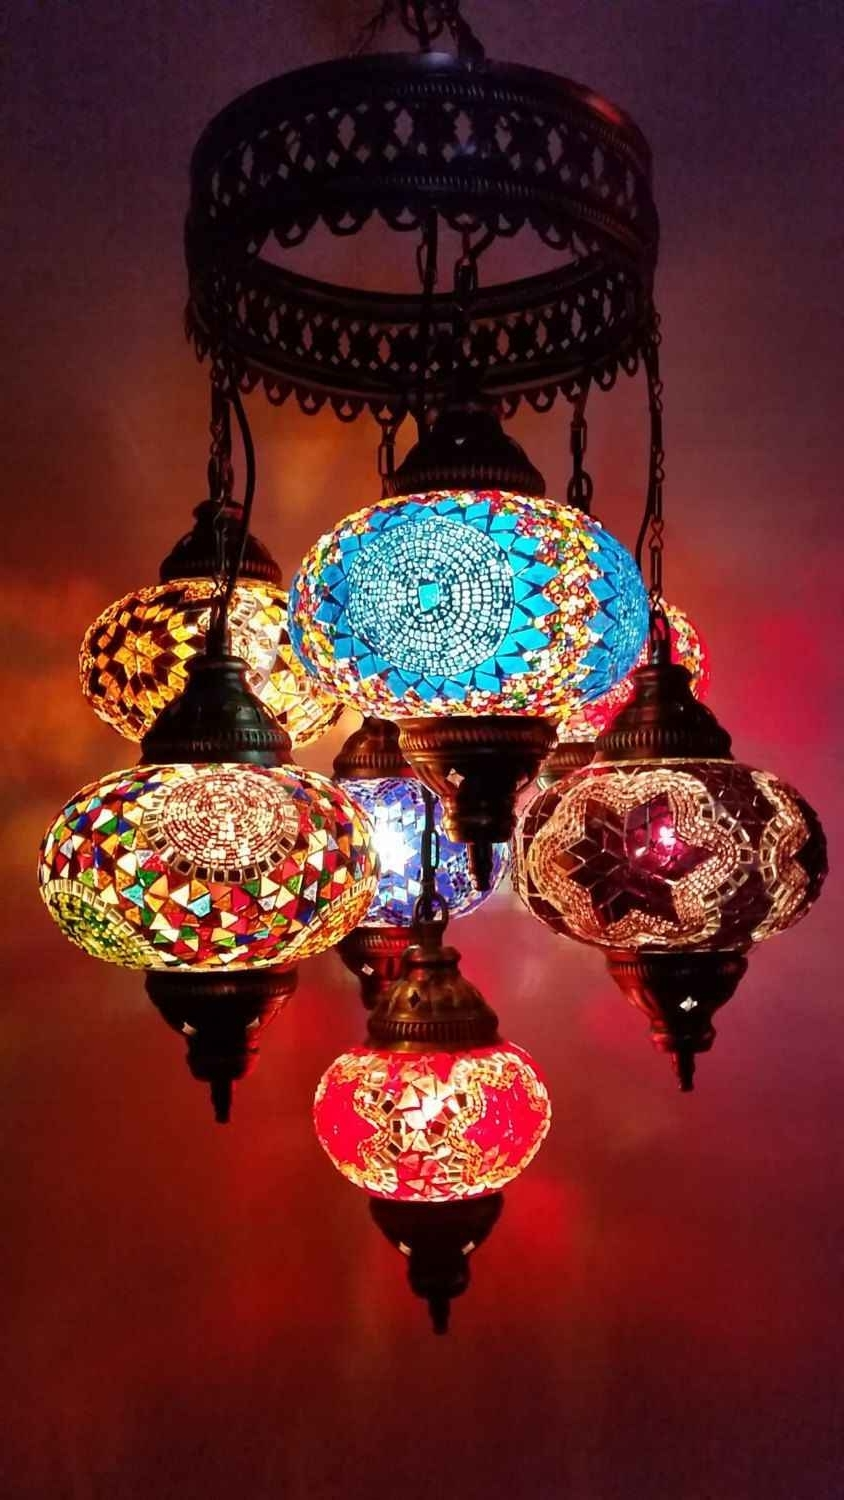 Multicolor Handmade 7 Balls Moroccan Mosaic Hanging Lamp Lantern Intended For Preferred Outdoor Mosaic Lanterns (View 10 of 20)